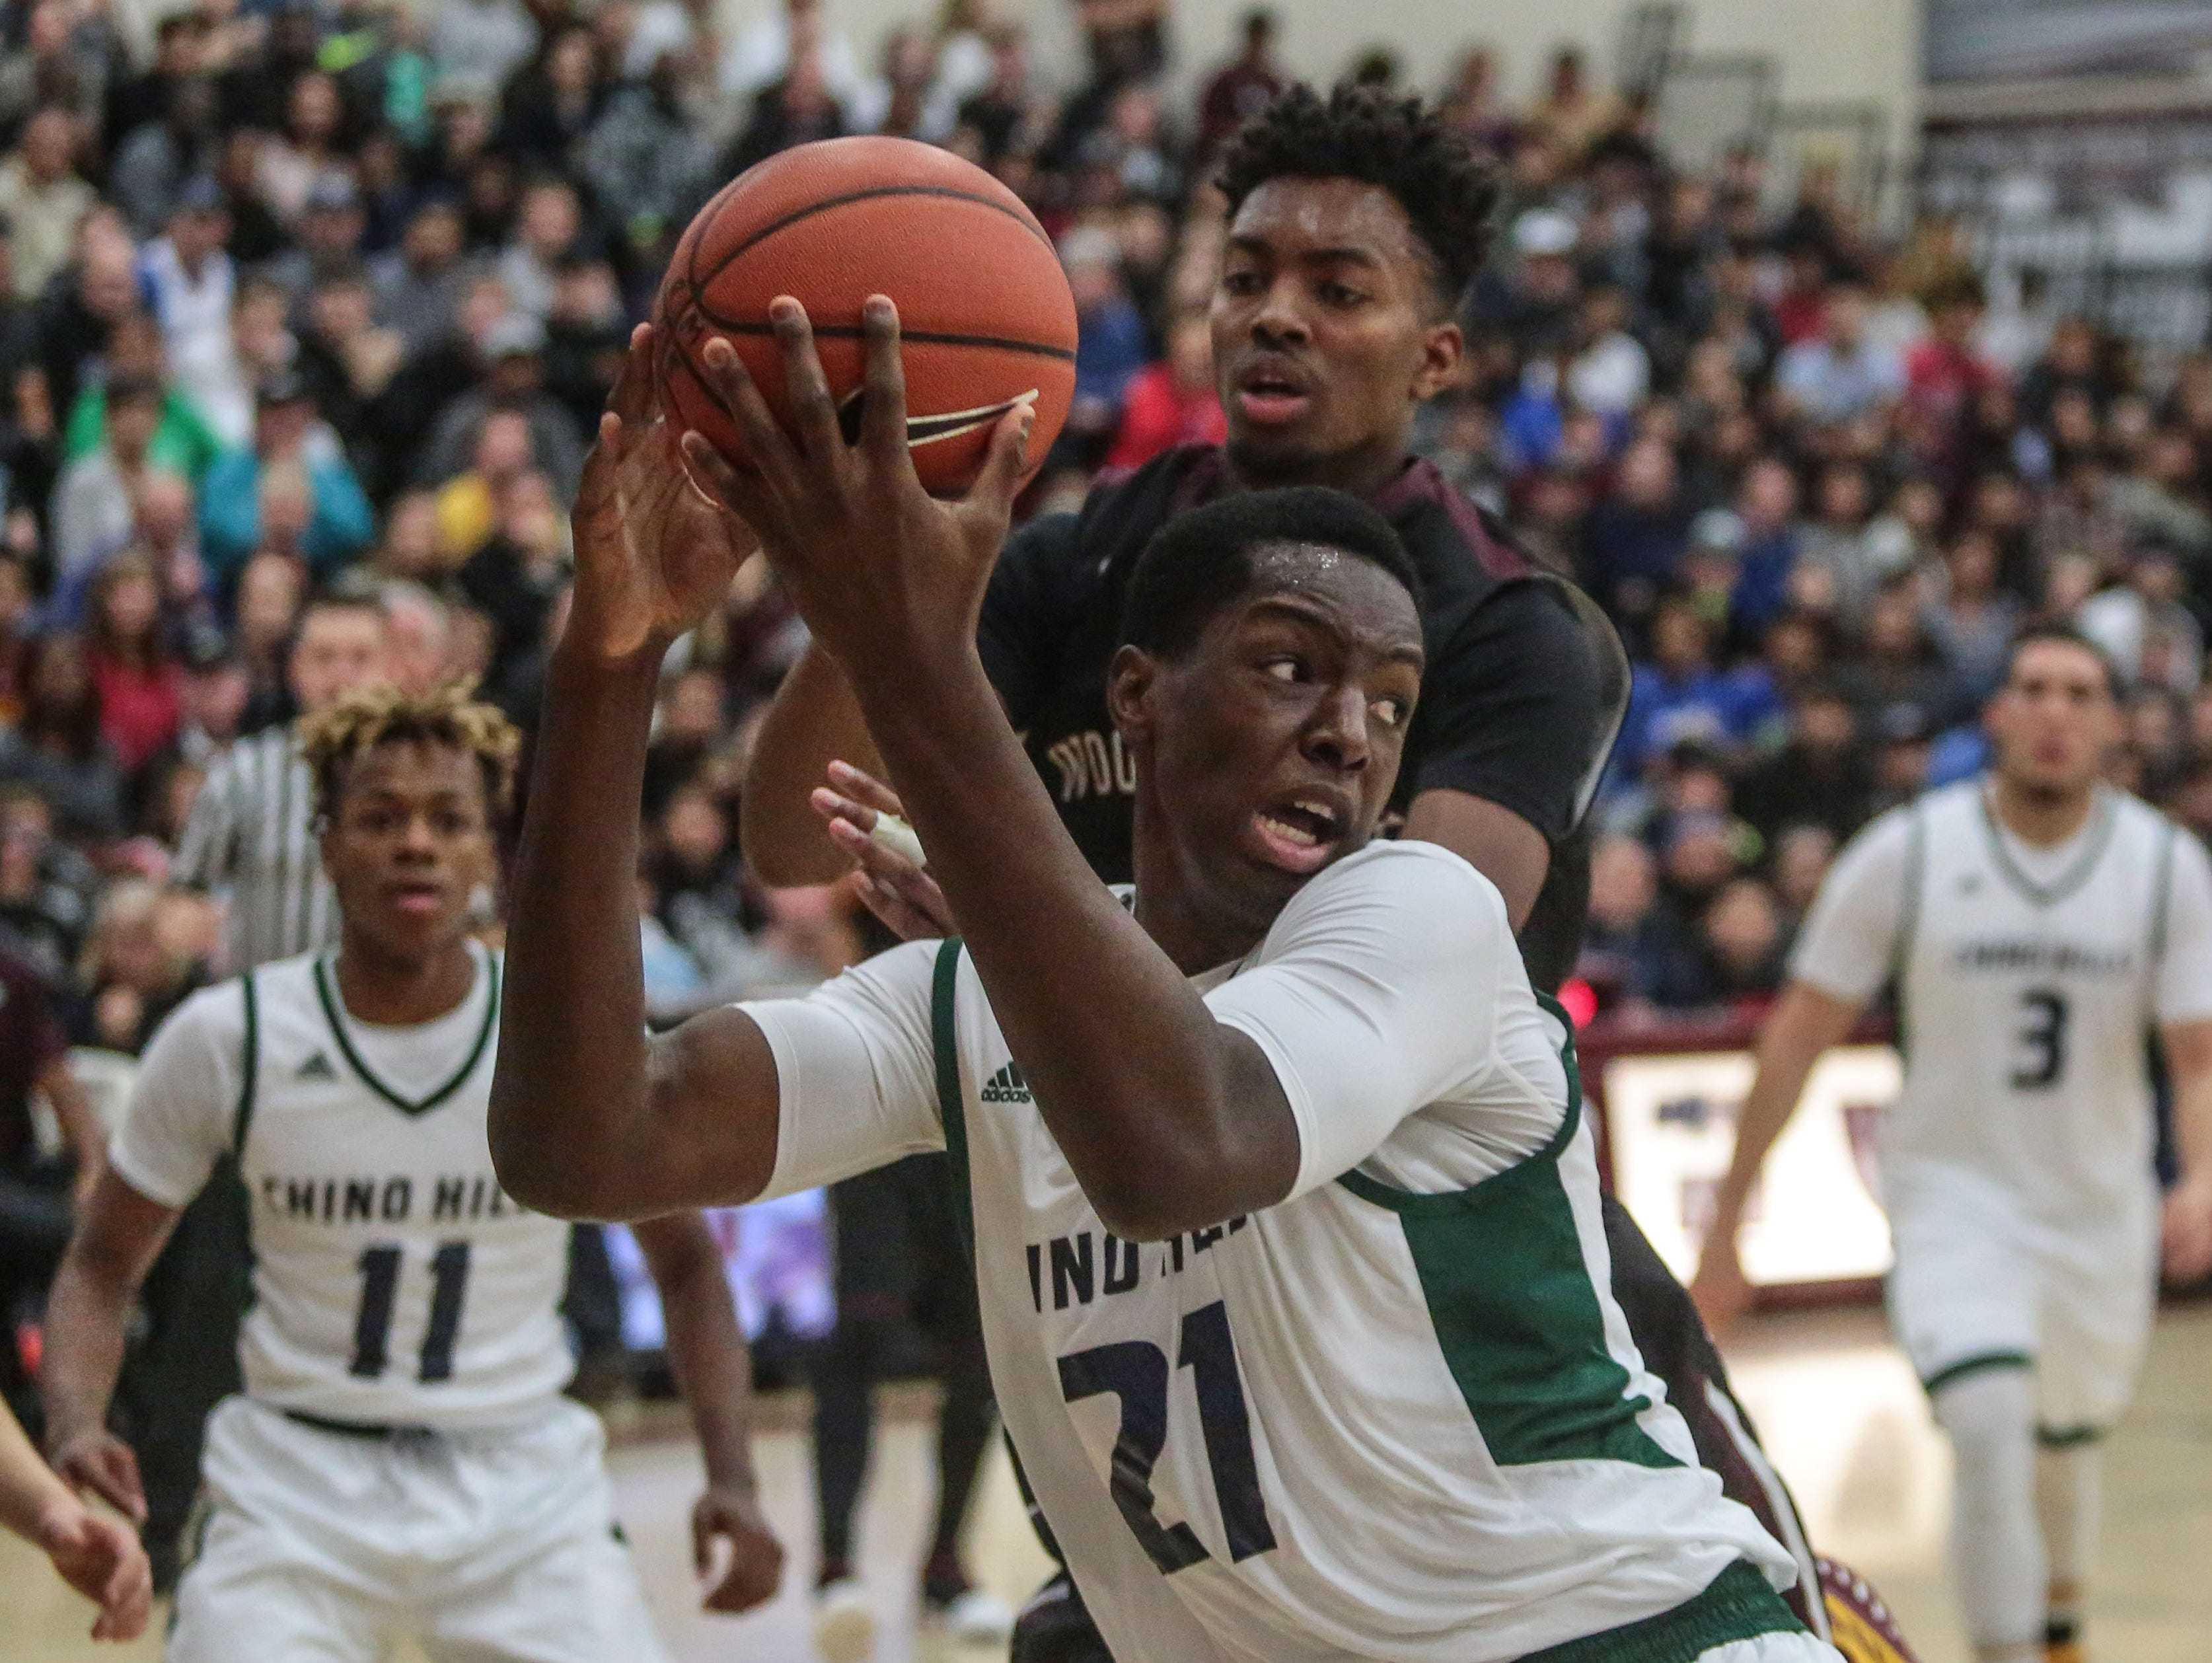 Chino Hills and Woodcreek basketball action on Wednesday, December 28, 2016 during the Rancho Mirage Holiday Invitational at Rancho Mirage High School.